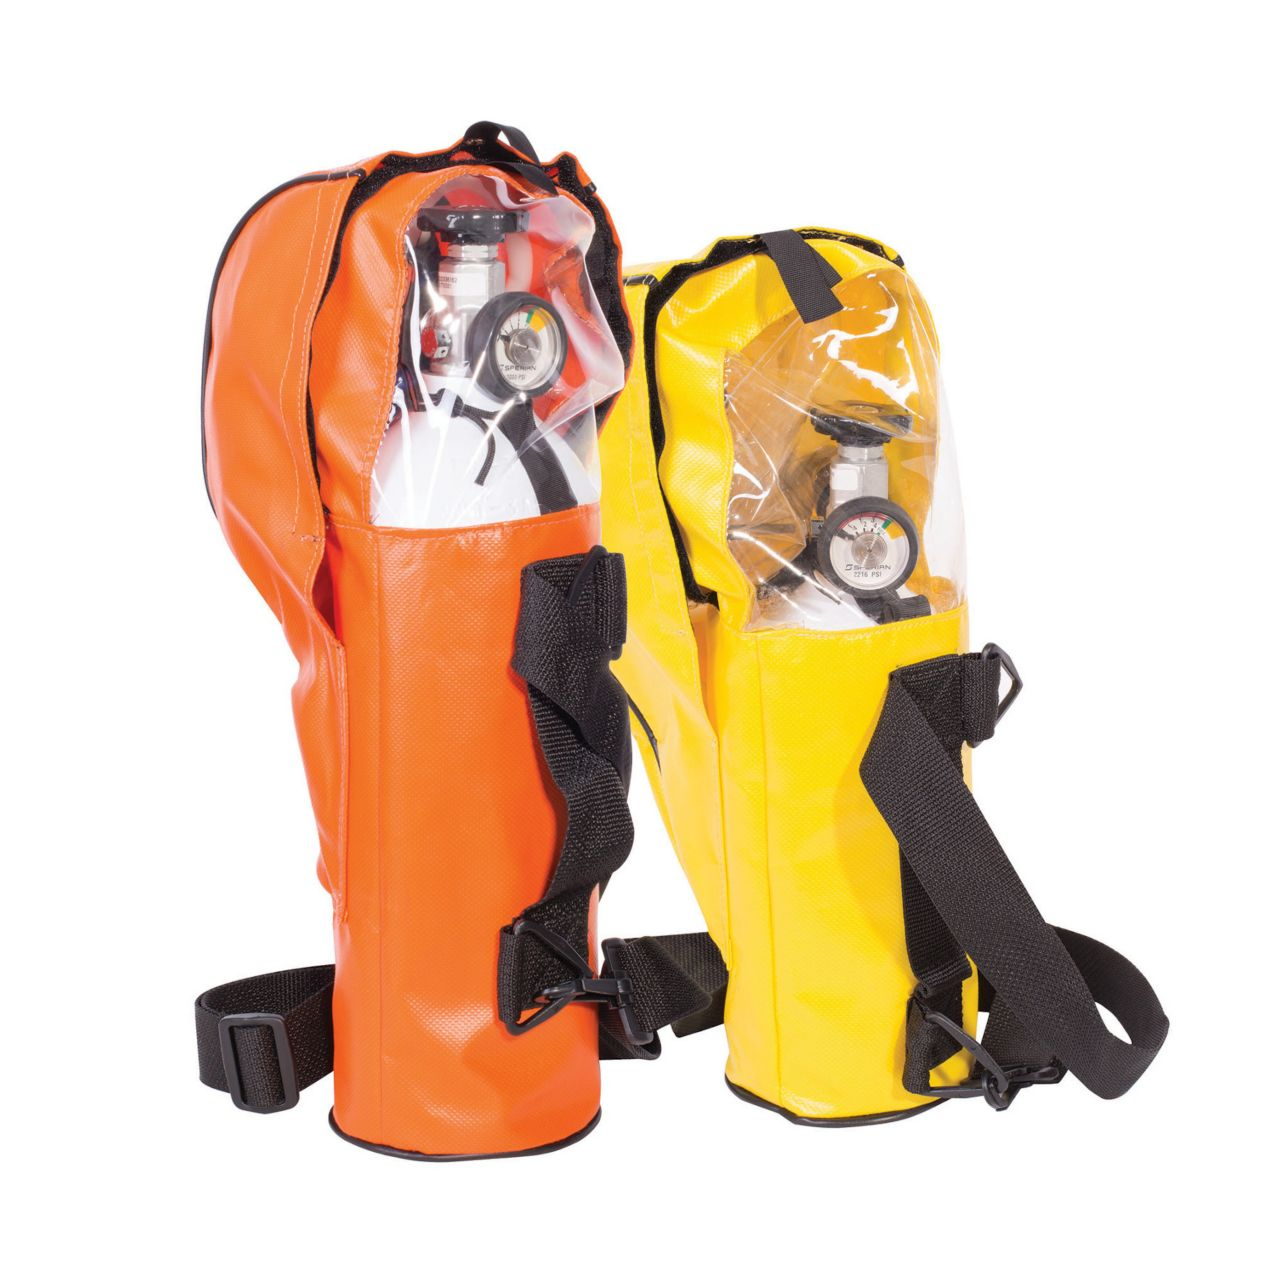 HS_er5000_eba_-_escape_breathing_apparatus_er5000 five and ten minute eba